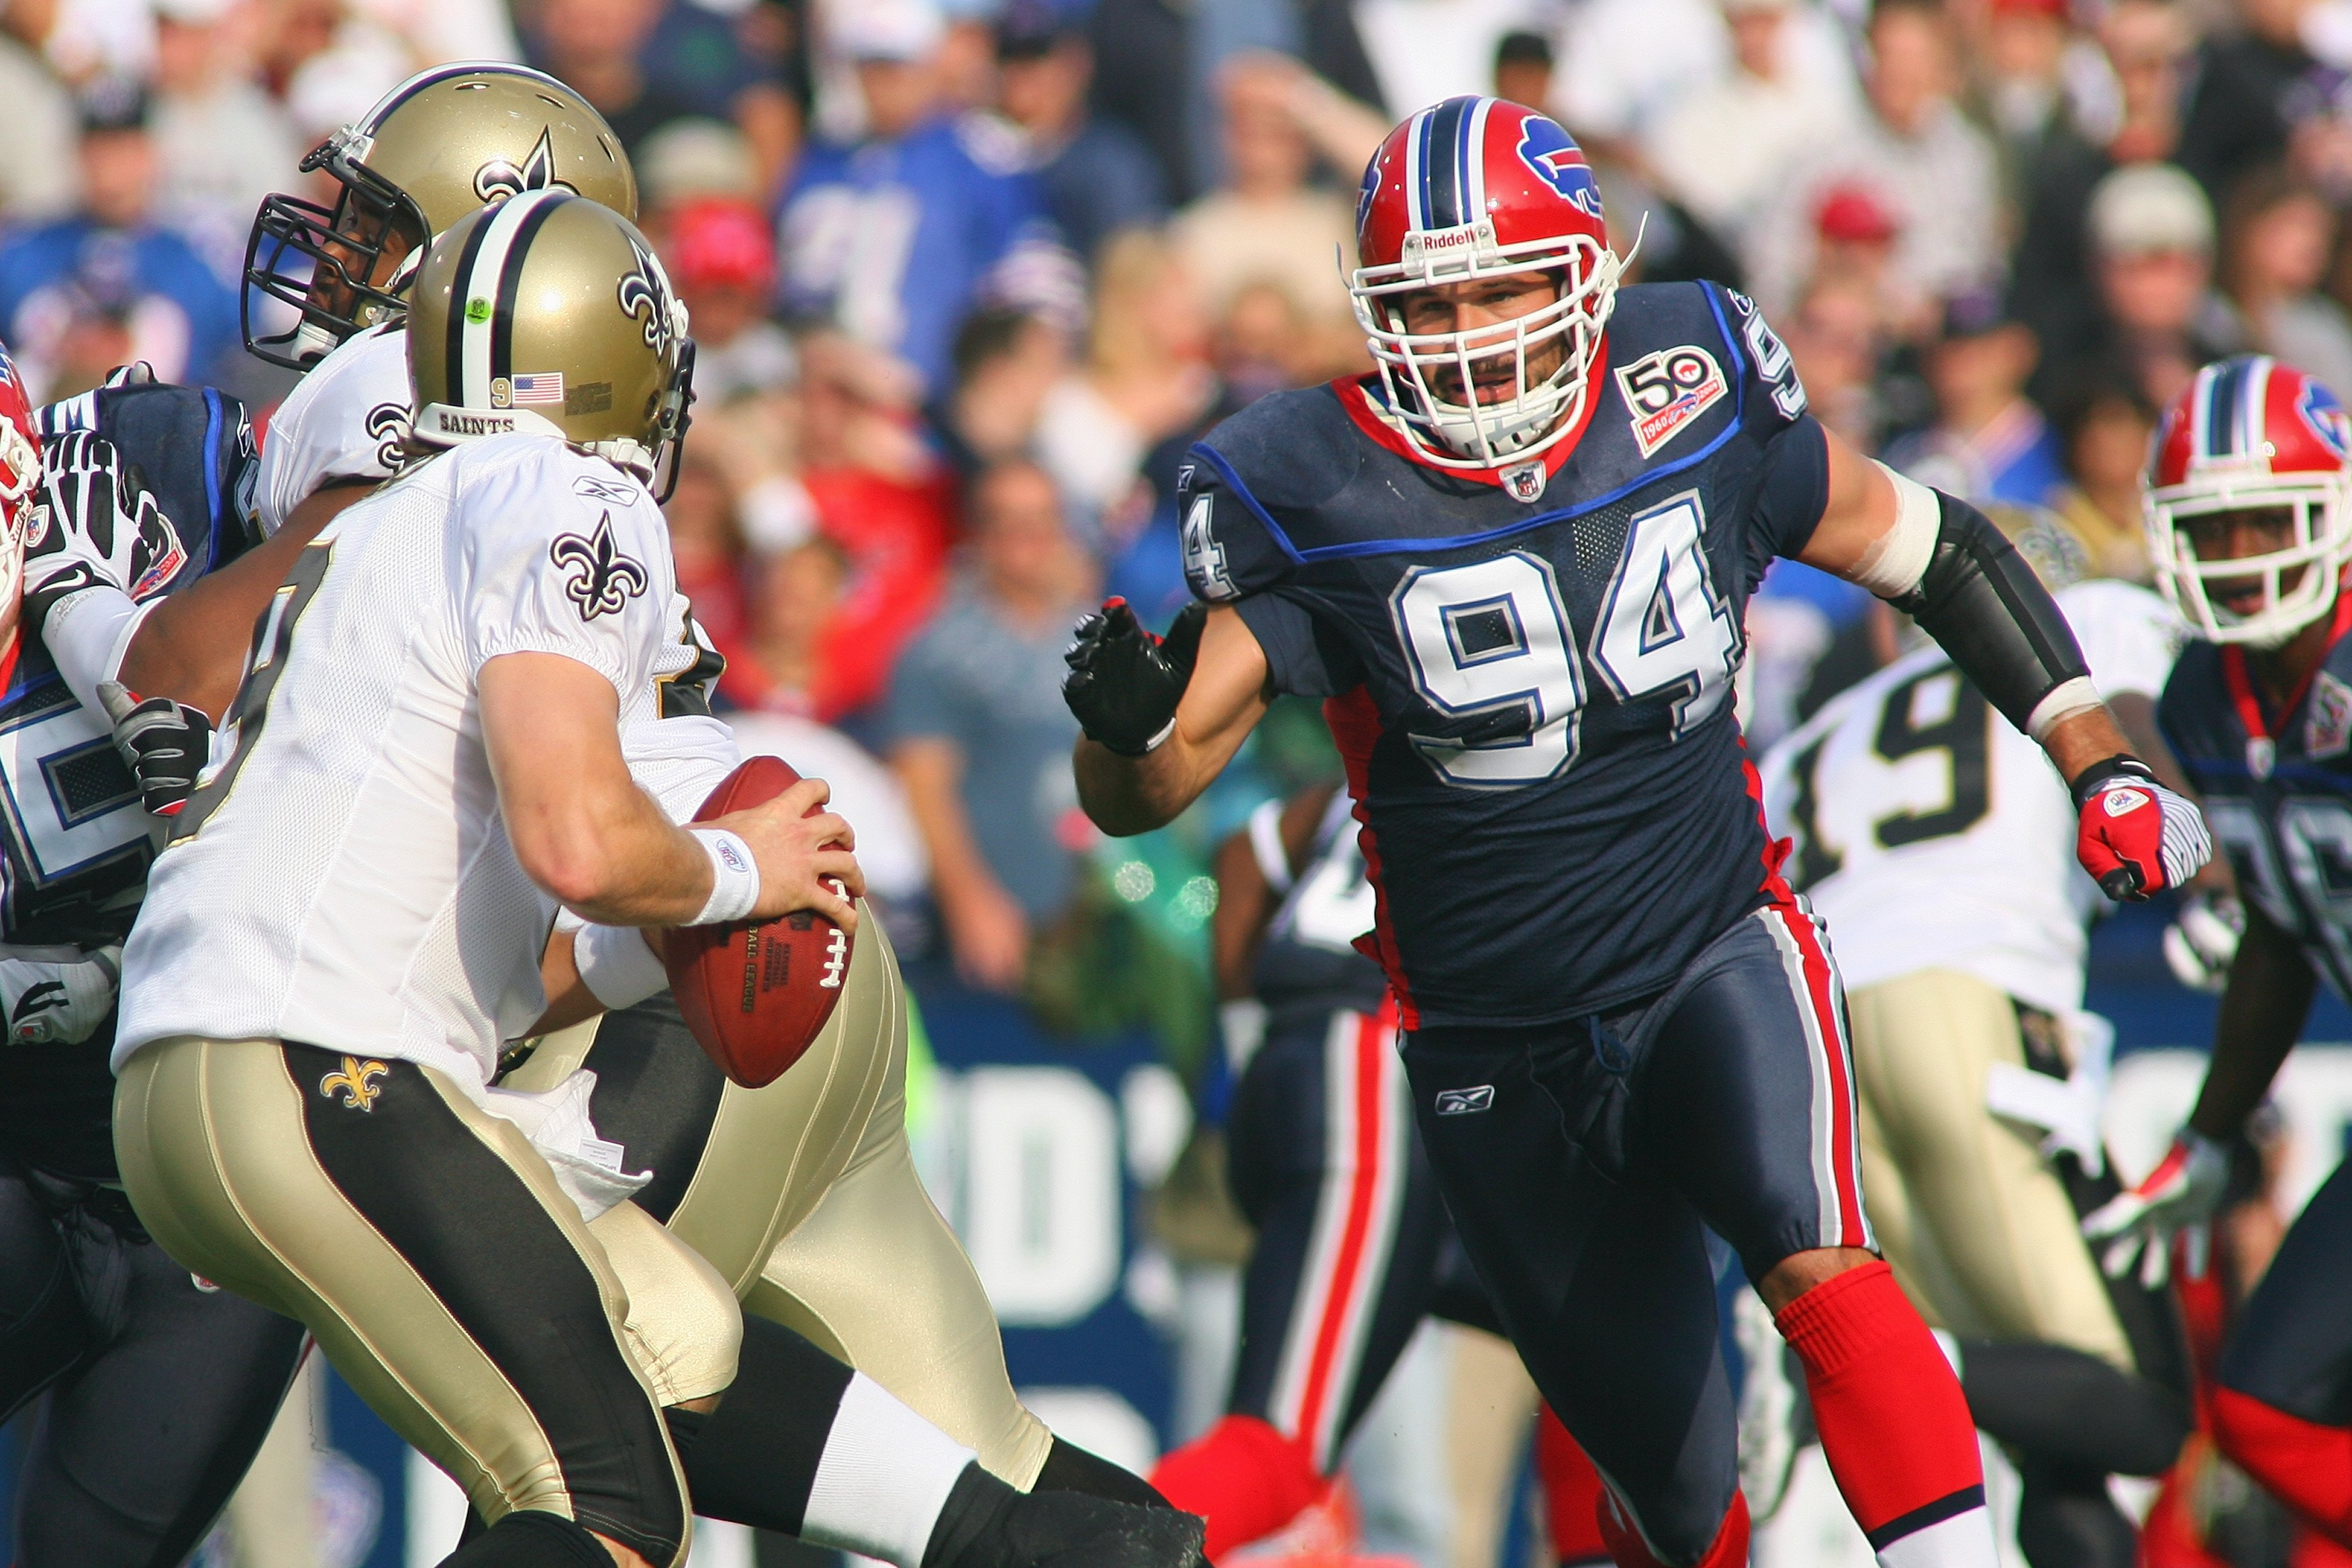 91258883-new-orleans-saints-v-buffalo-bills.jpg